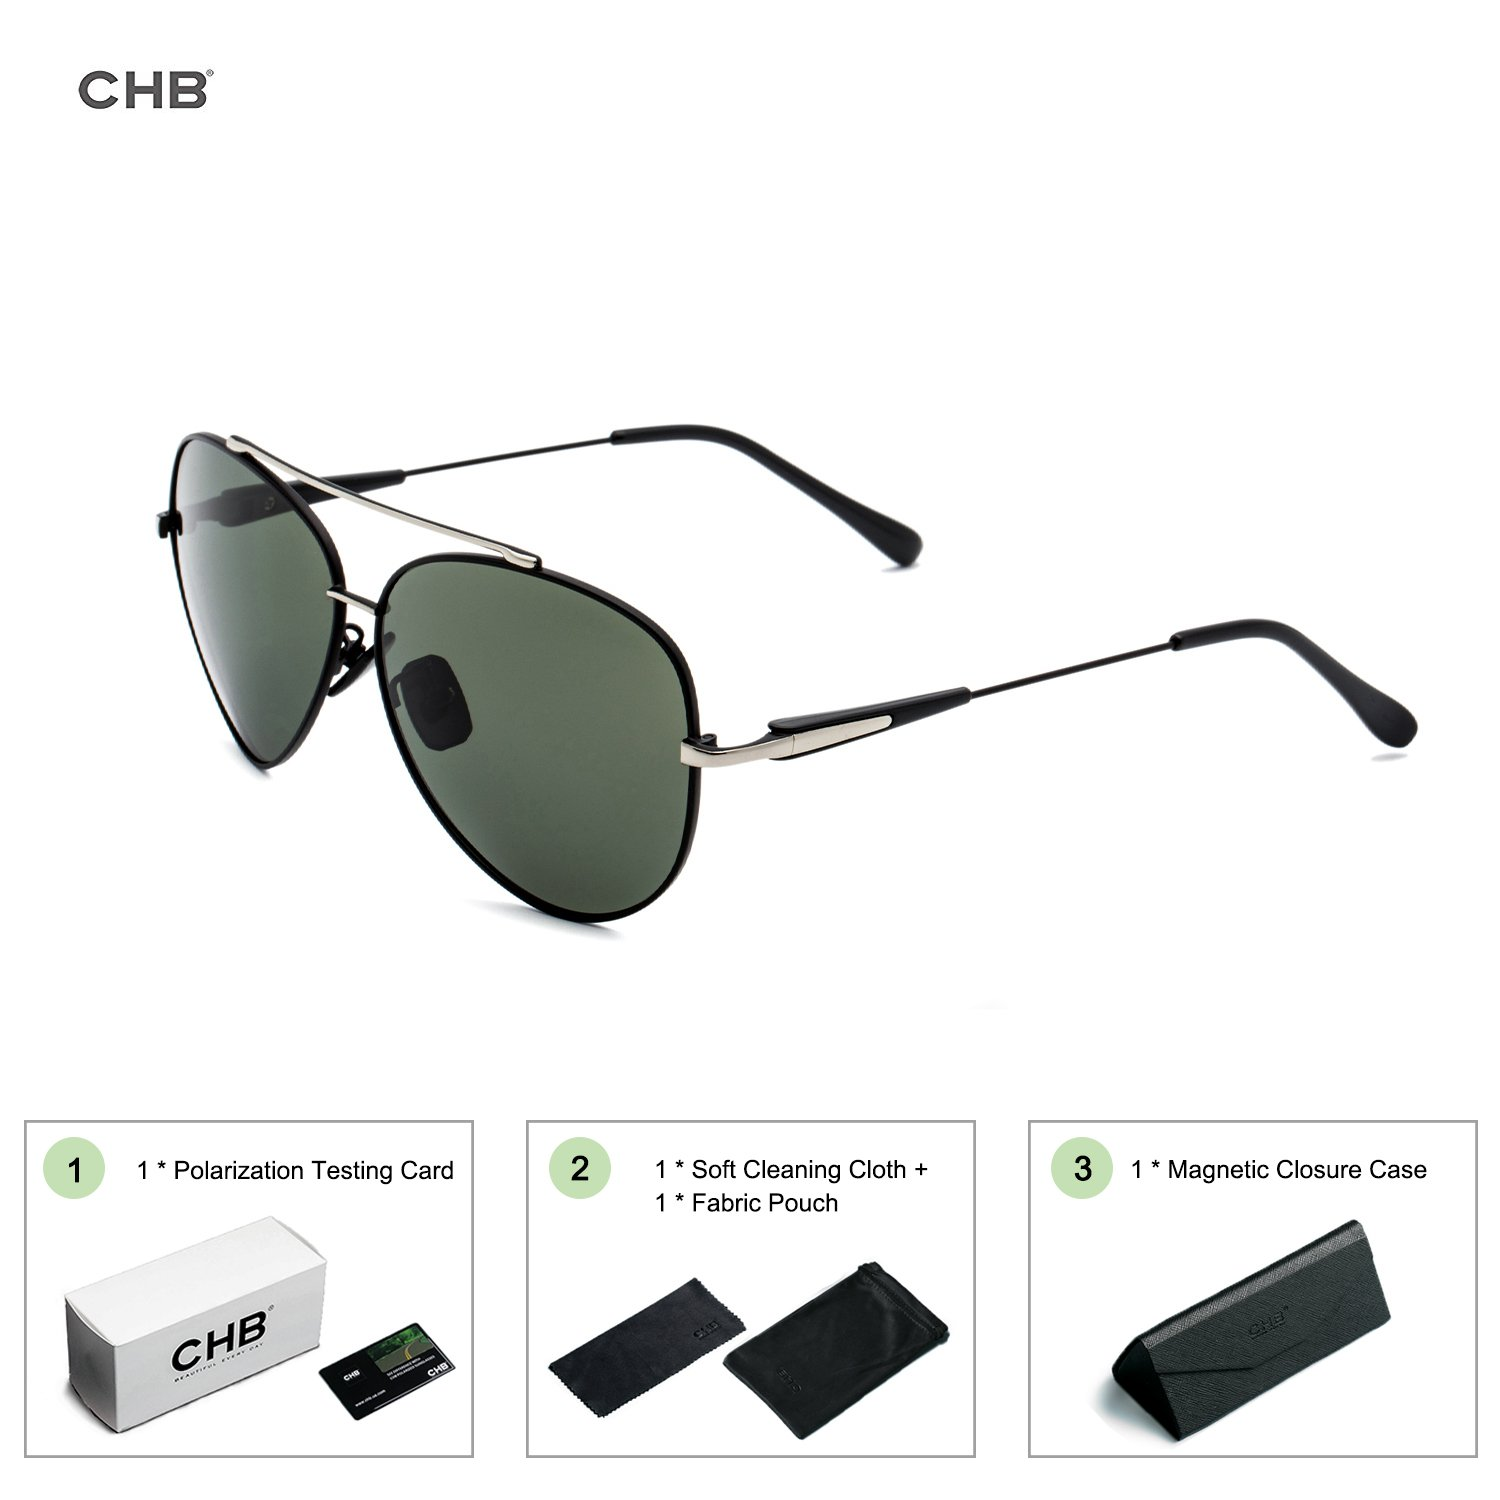 3529c68b63c CHB Aviator Style Sunglasses Men s Polarized With Case Light-weighted  Classic Metal Frame UV400 Protection  Amazon.co.uk  Sports   Outdoors